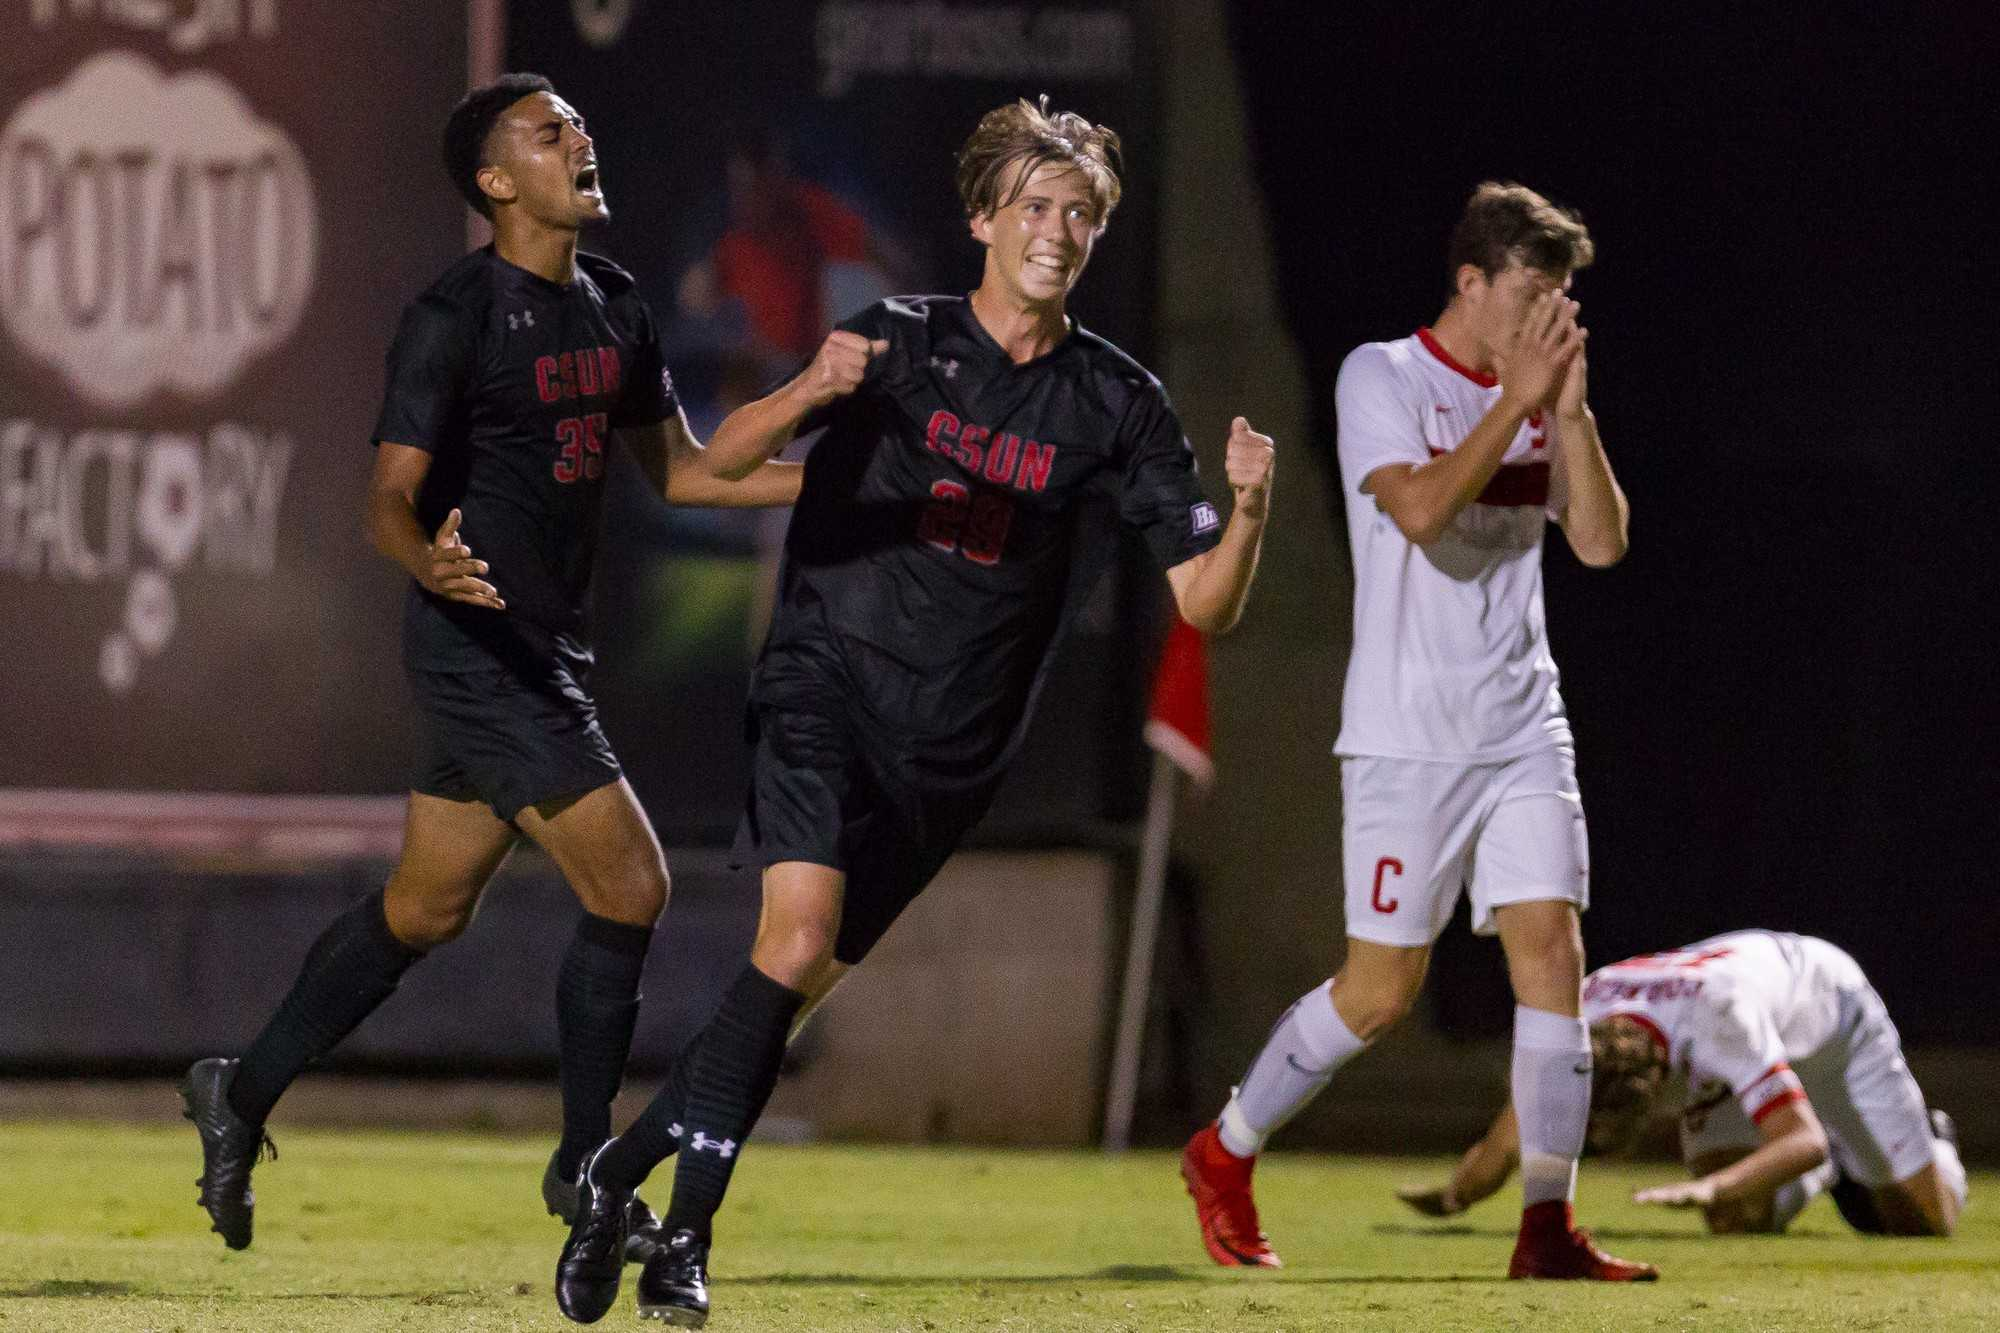 CSUN's Wolfgang Prentice celebrates after scoring the opening goal against Cornell. Photo credit: Shae Hammond